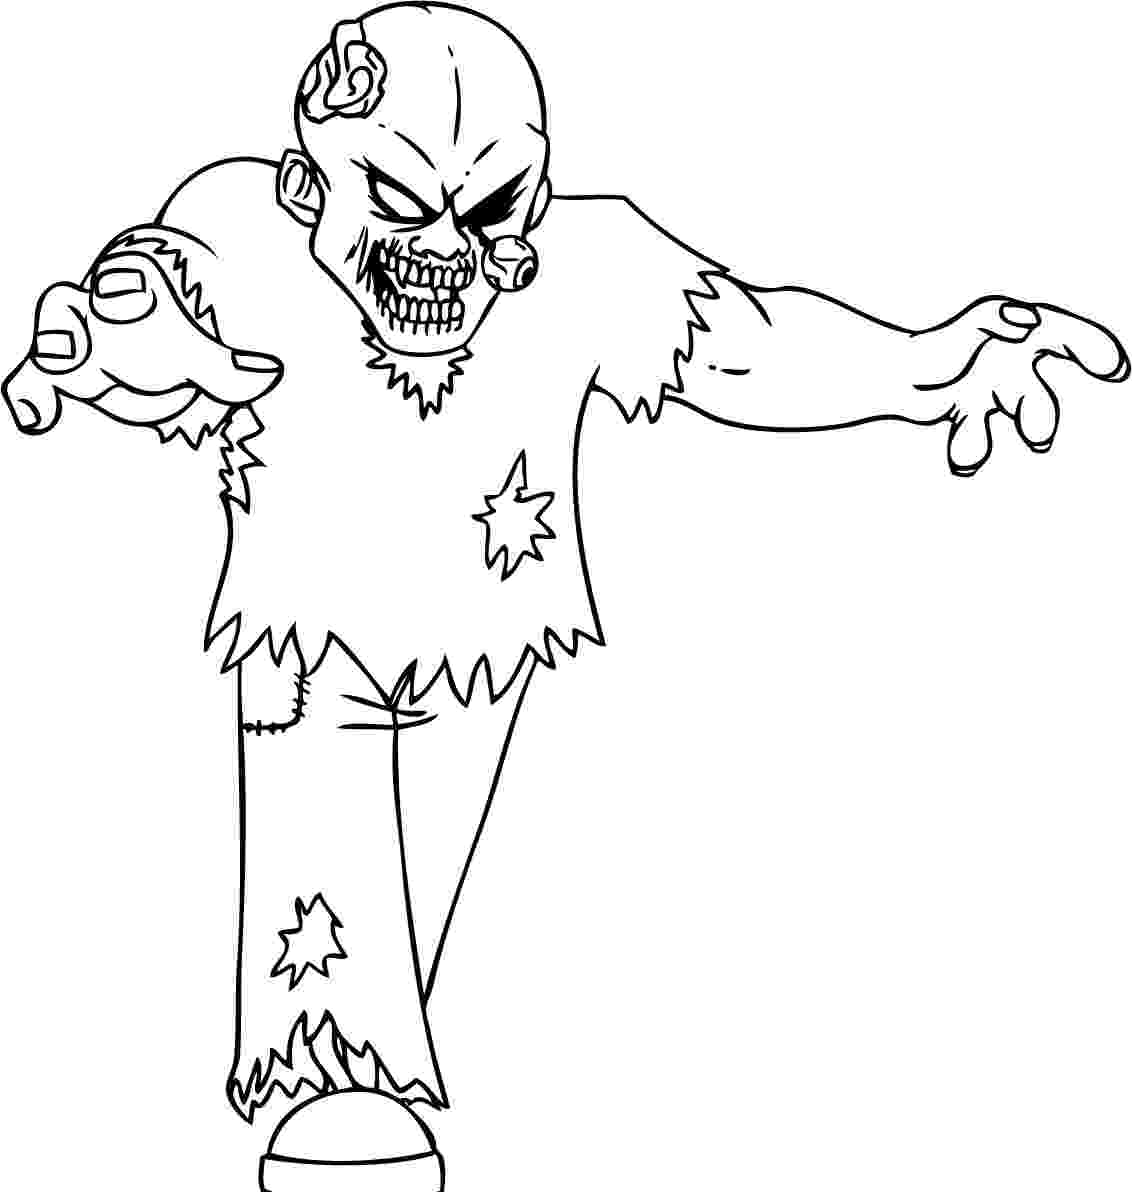 zombie printable coloring pages free printable zombies coloring pages for kids zombie coloring pages printable